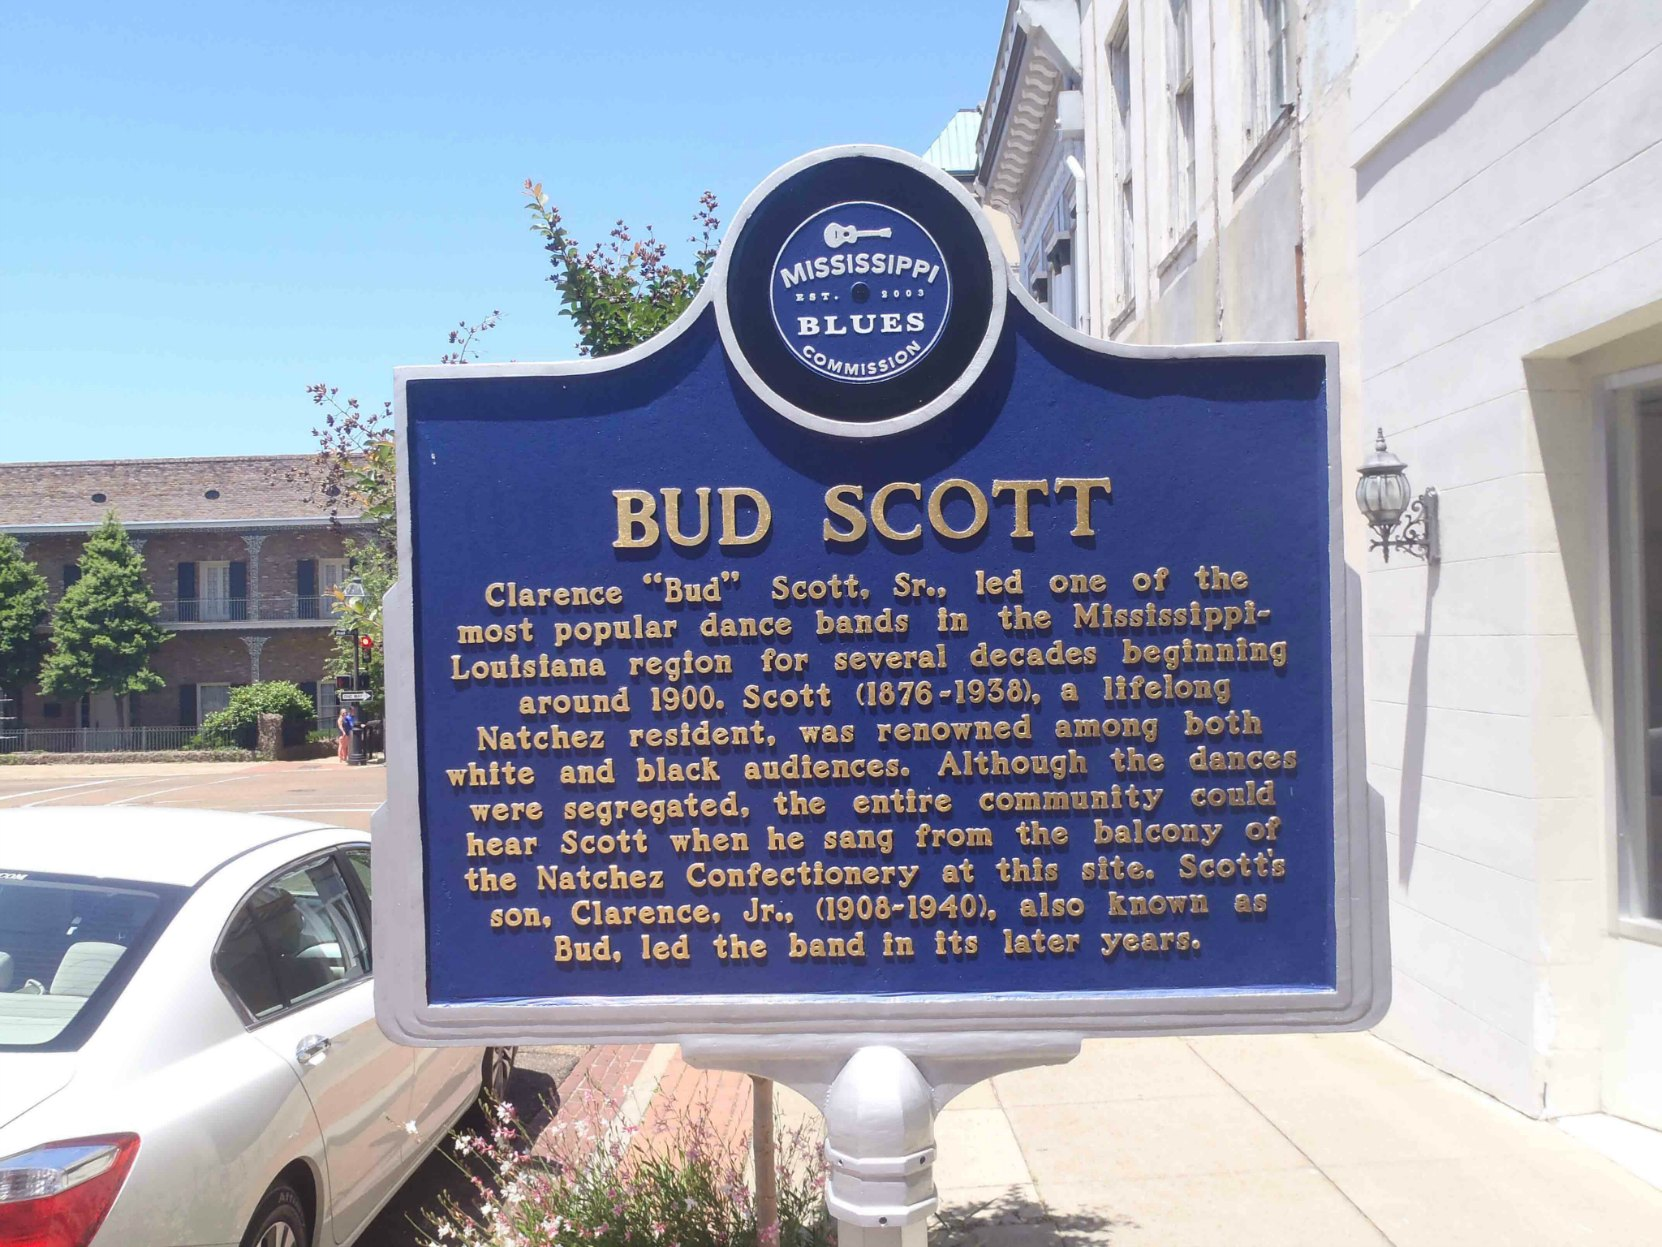 The Mississippi Blues Trail marker commemorating Bud Scott, Natchez, Mississippi